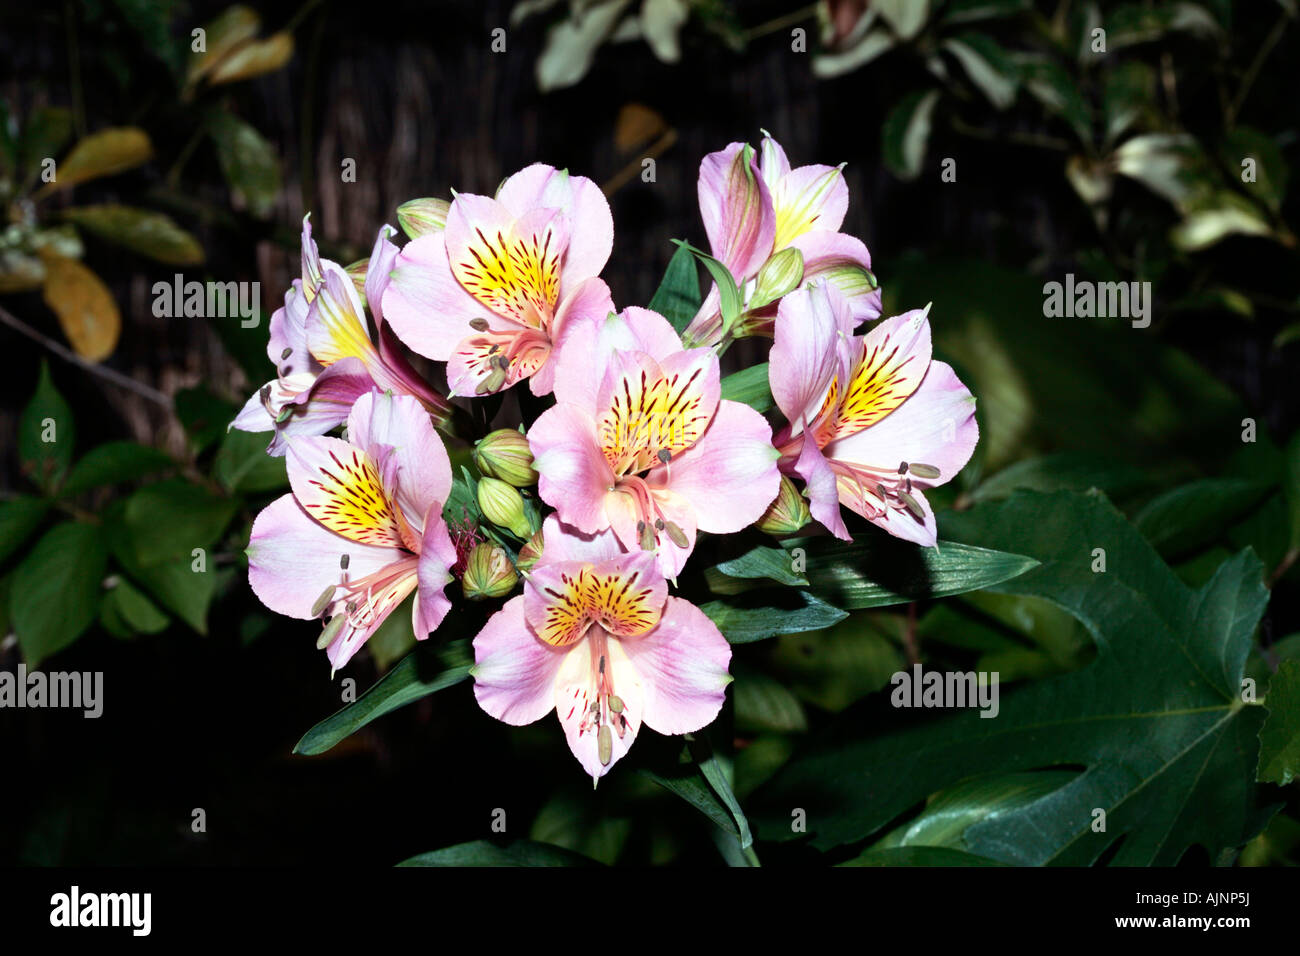 Peruvian lily chilean lily flower of the incas alstroemeria peruvian lily chilean lily flower of the incas alstroemeria izmirmasajfo Gallery